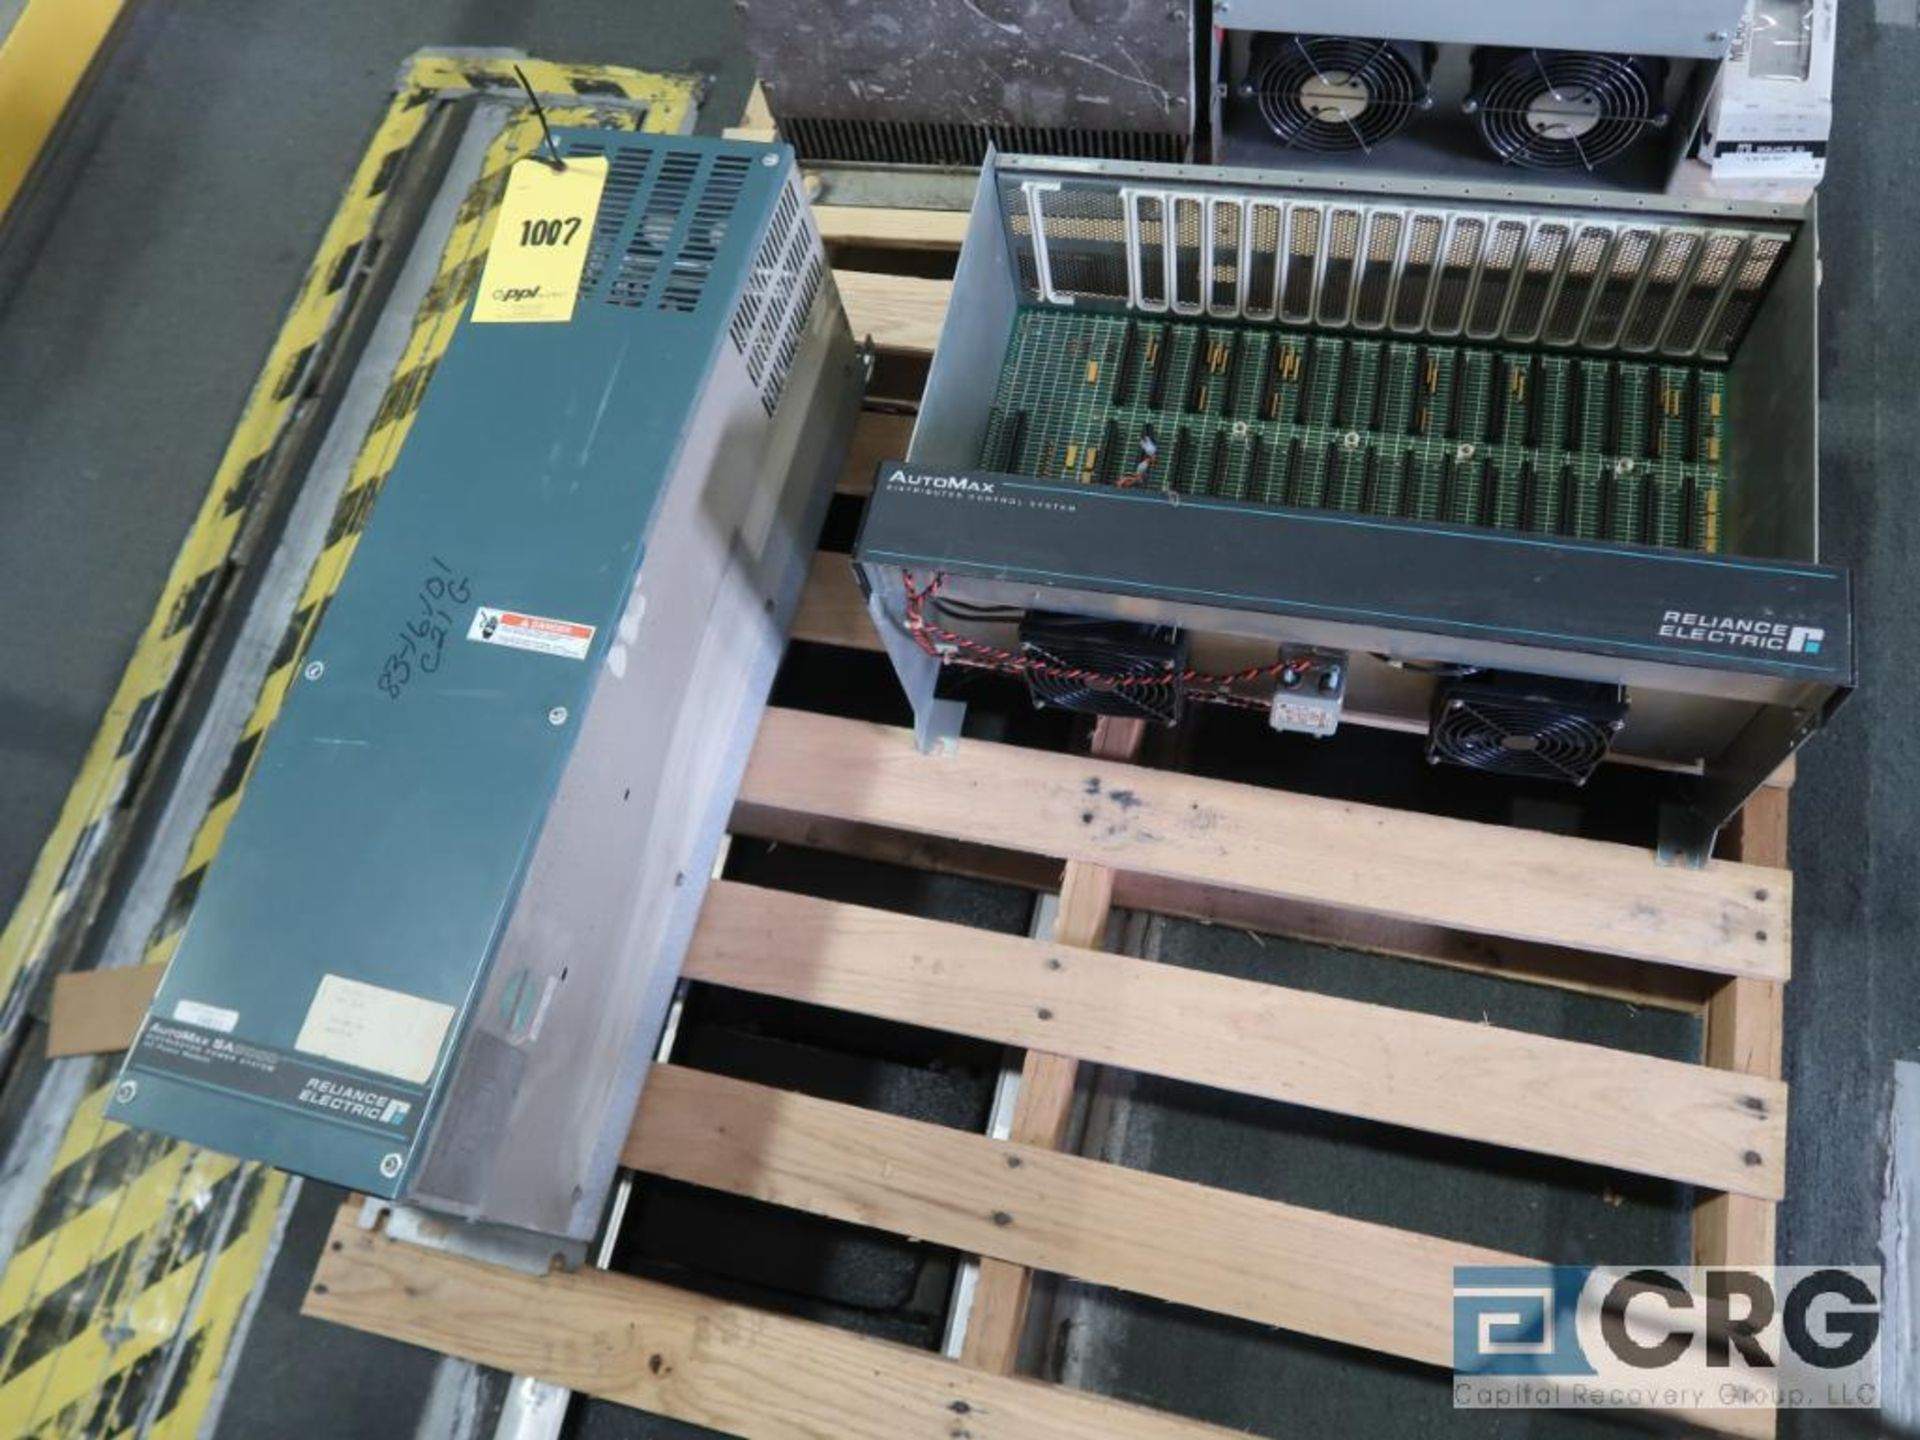 Lot of (3) Reliance AutoMarsa 3000 AC power module, IO chassis (Finish Building) - Image 3 of 4